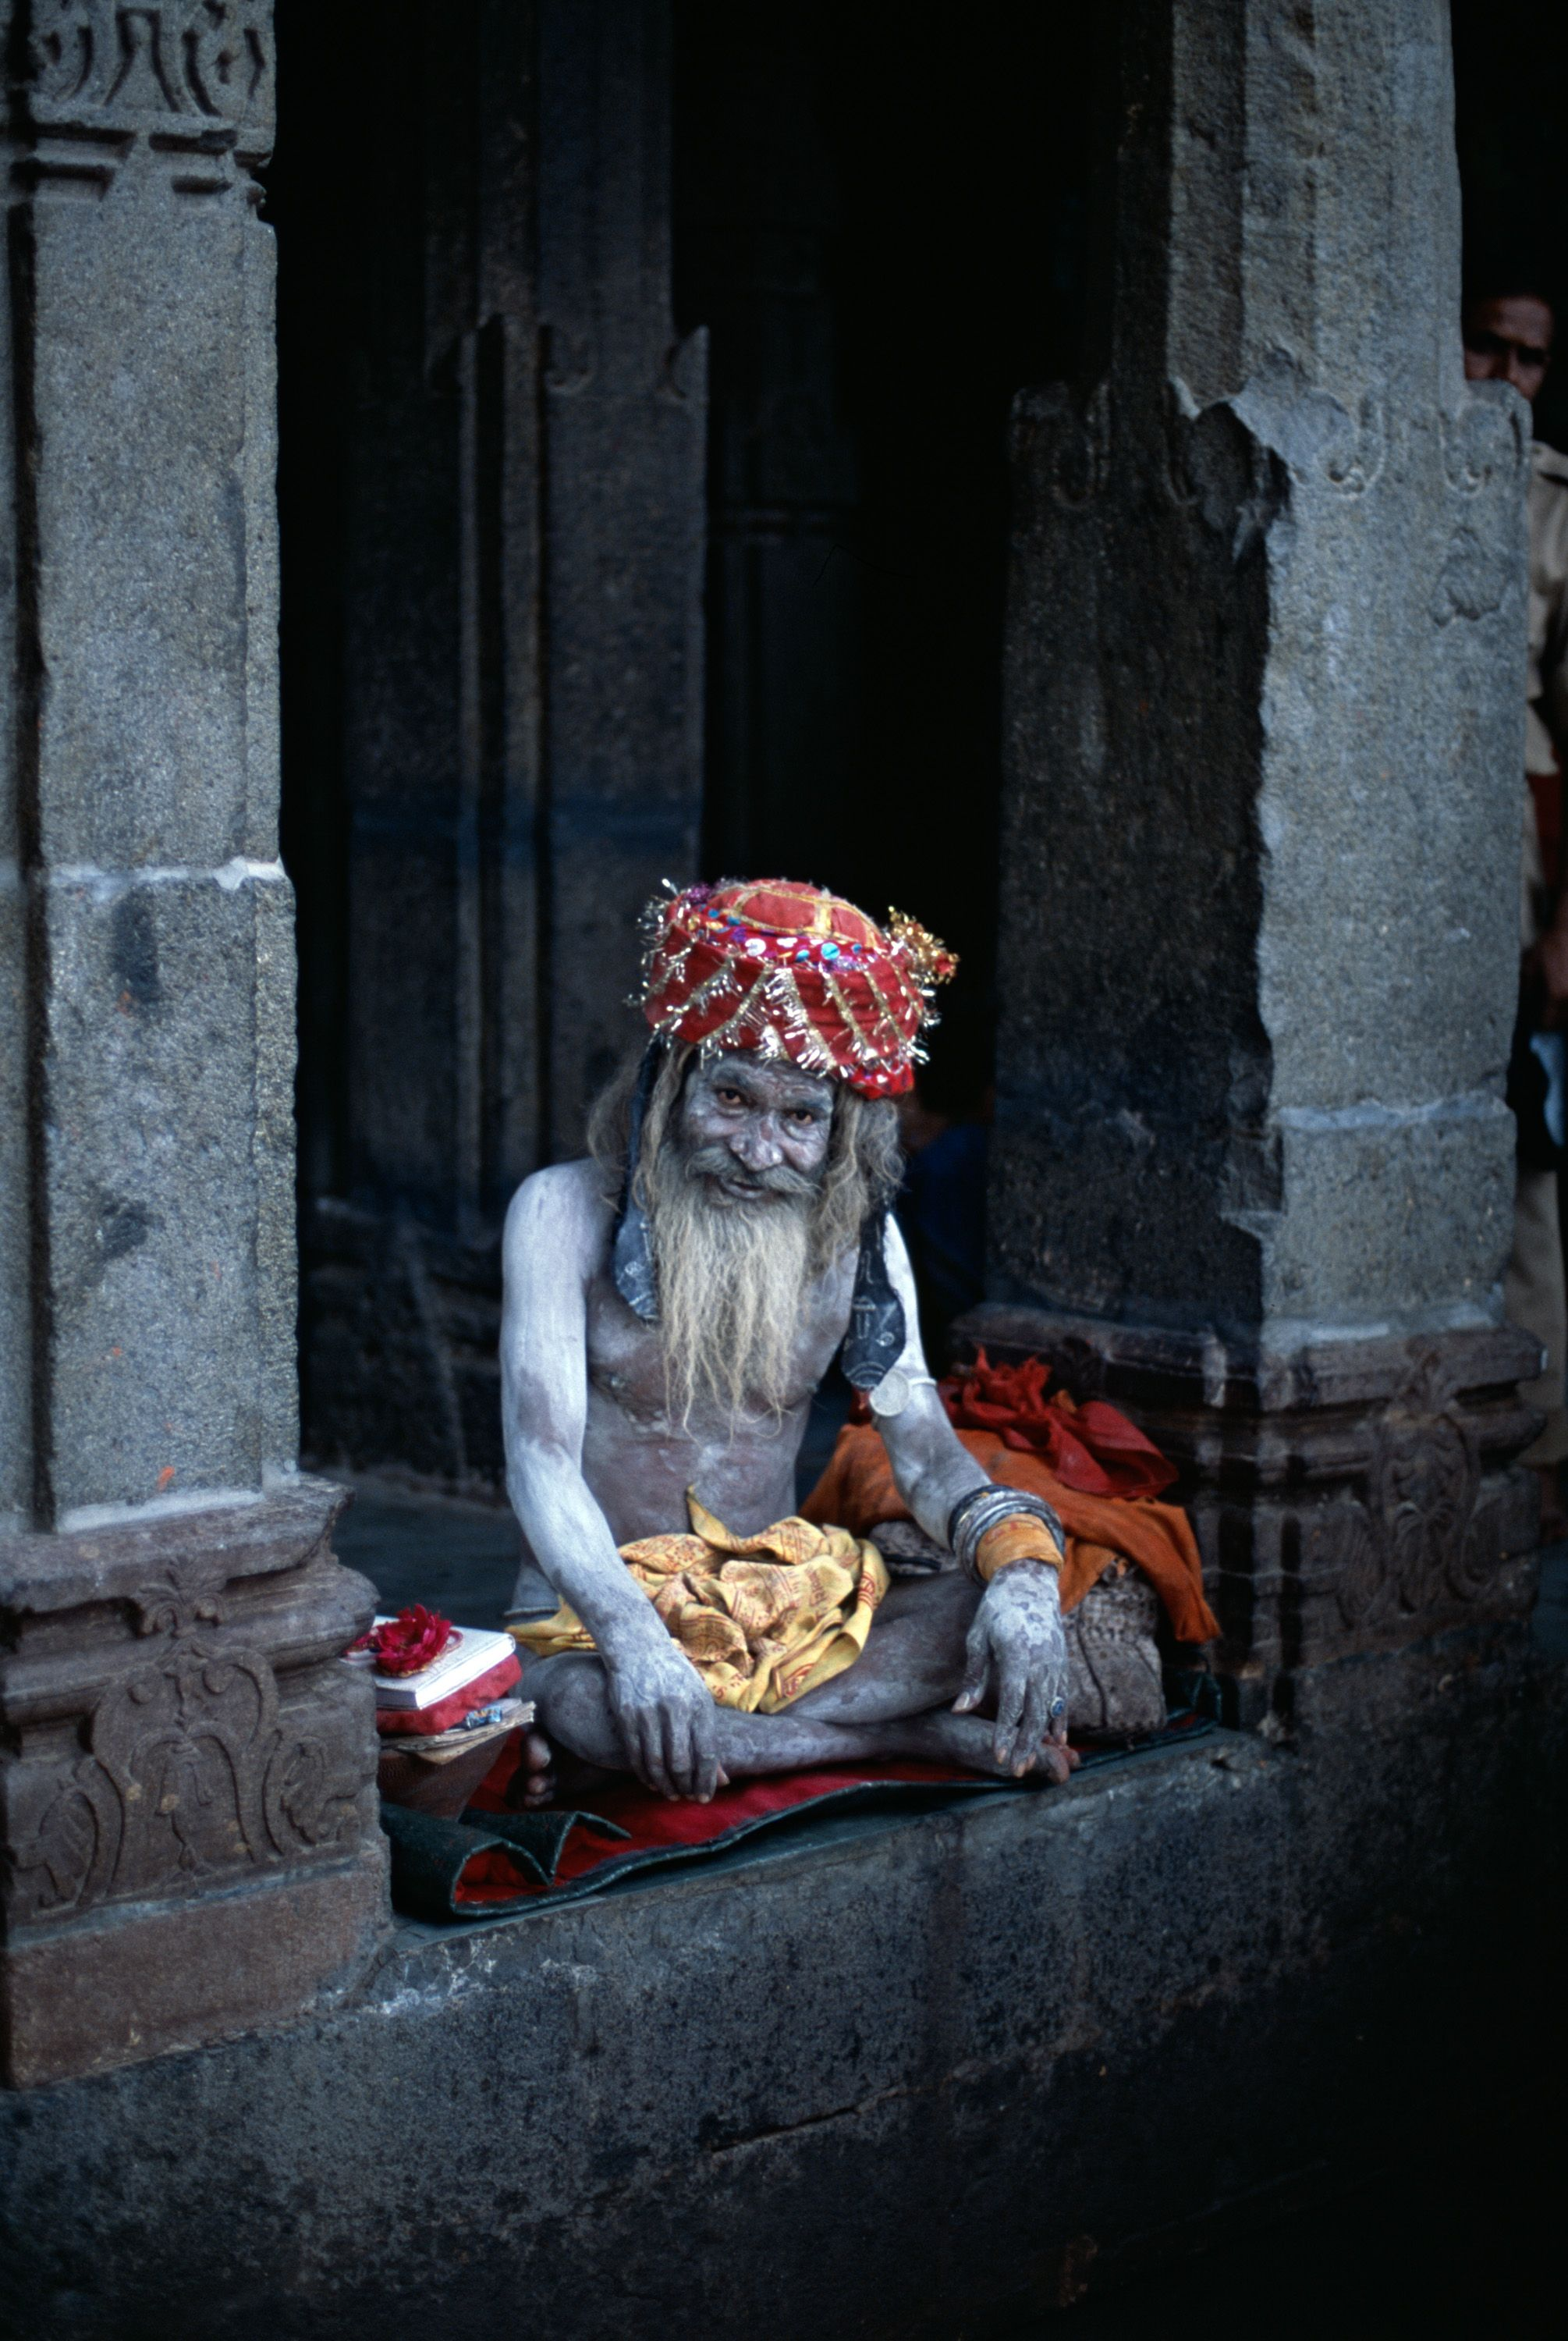 http://stevemccurry.files.wordpress.com/2009/10/india-10256.jpg - Amazing Picture